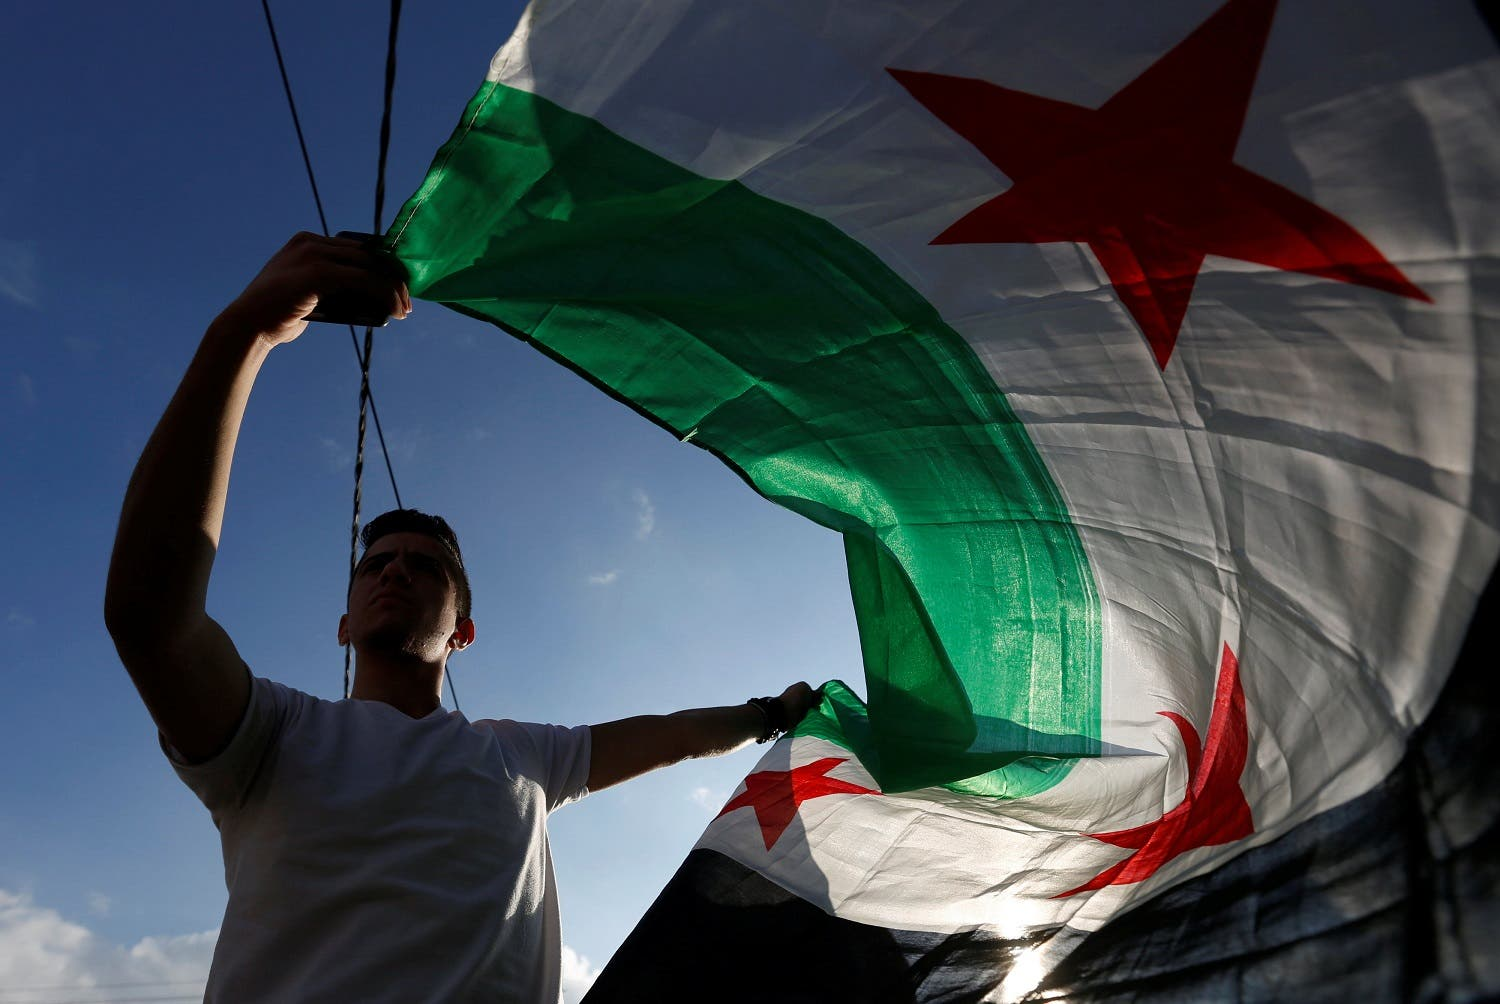 A protester holds a Syrian opposition flag during a sit-in, in solidarity with the people of Aleppo against the Syrian regime in Amman. (Reuters)